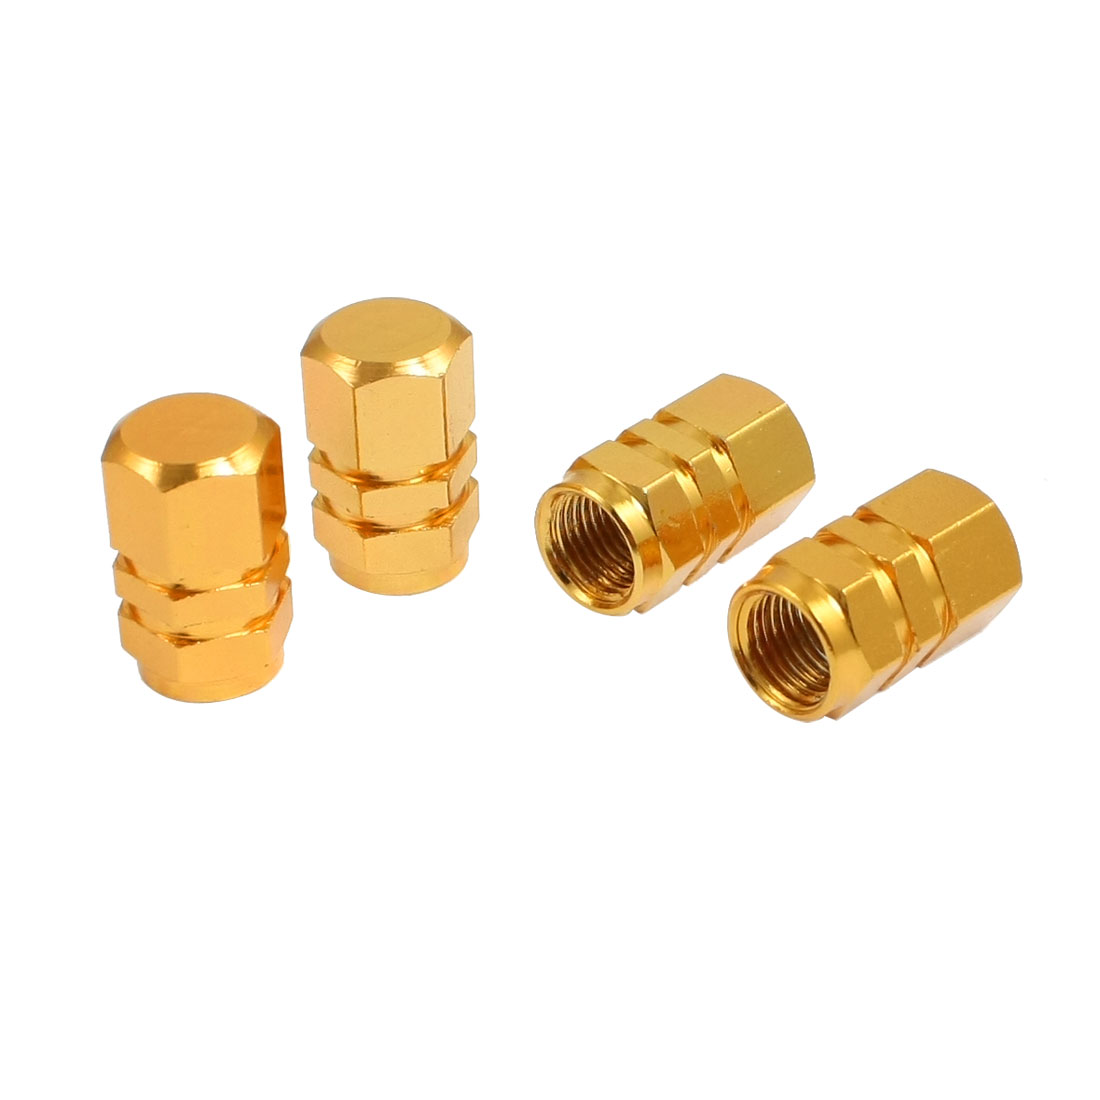 4 Pcs Gold Tone Alloy Car Tyre Tire Valve Cap Cover Replacement